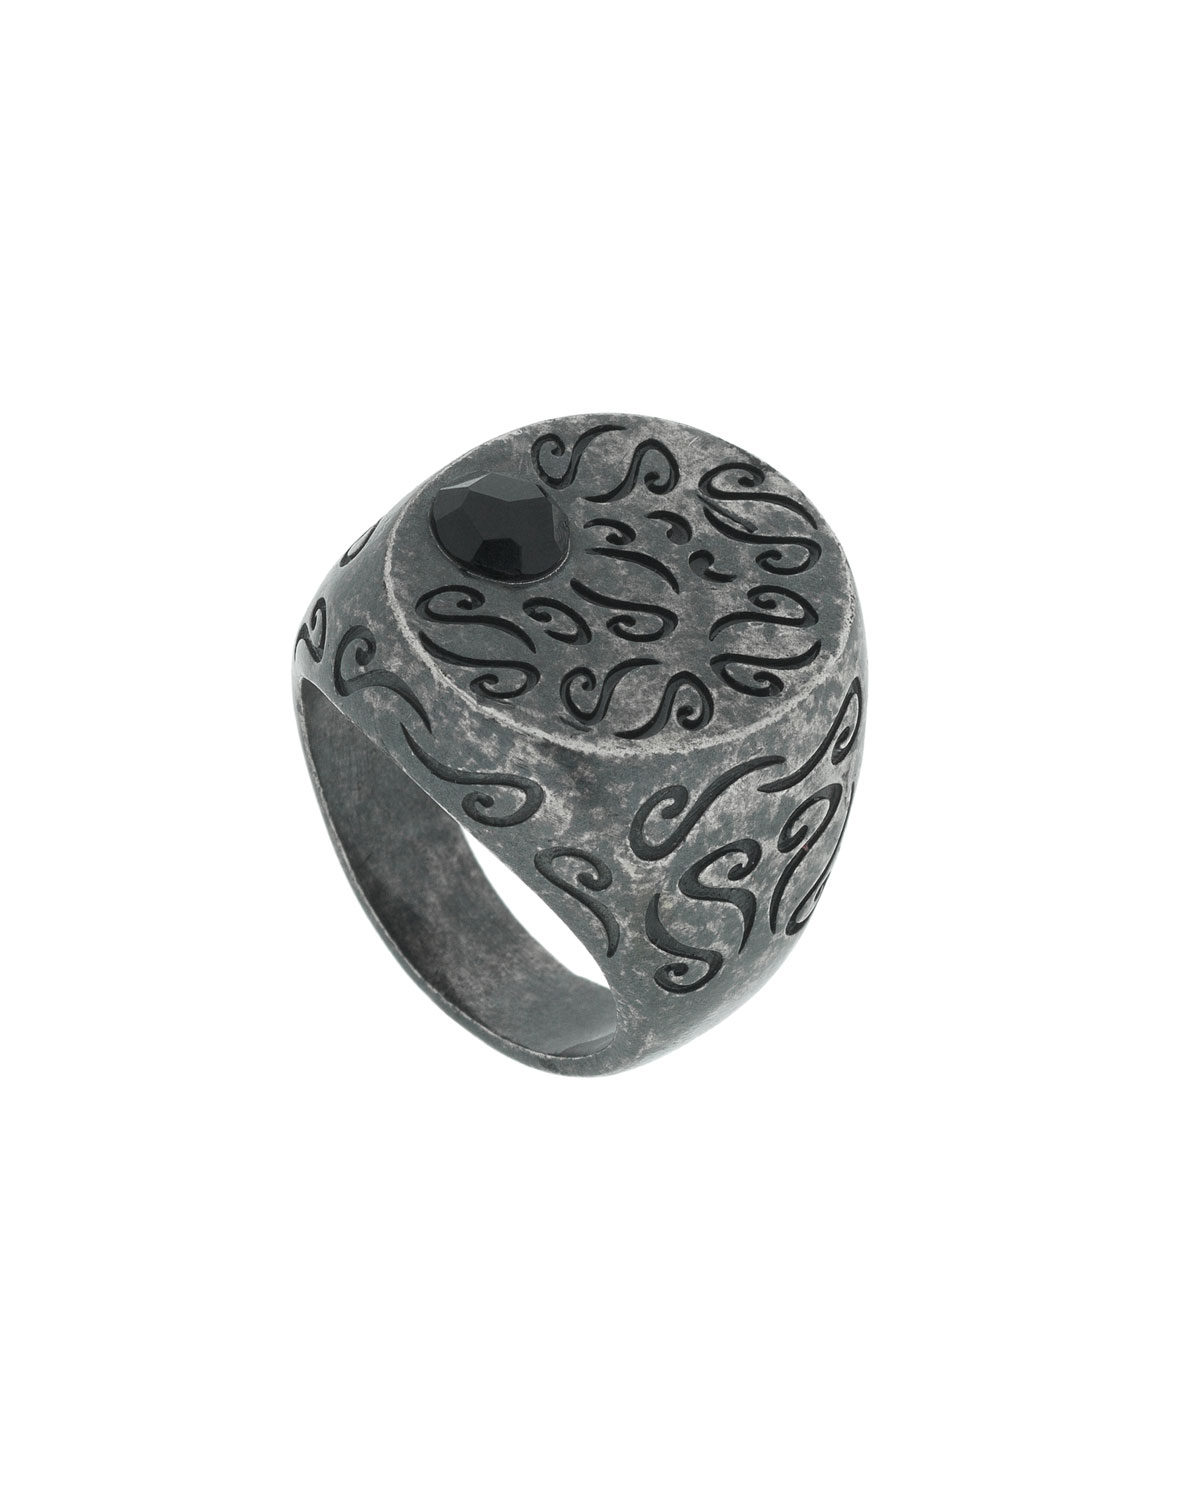 MARCO TA MOKO Men'S Round Oxidized Silver Ring With Onyx, Size 9.5